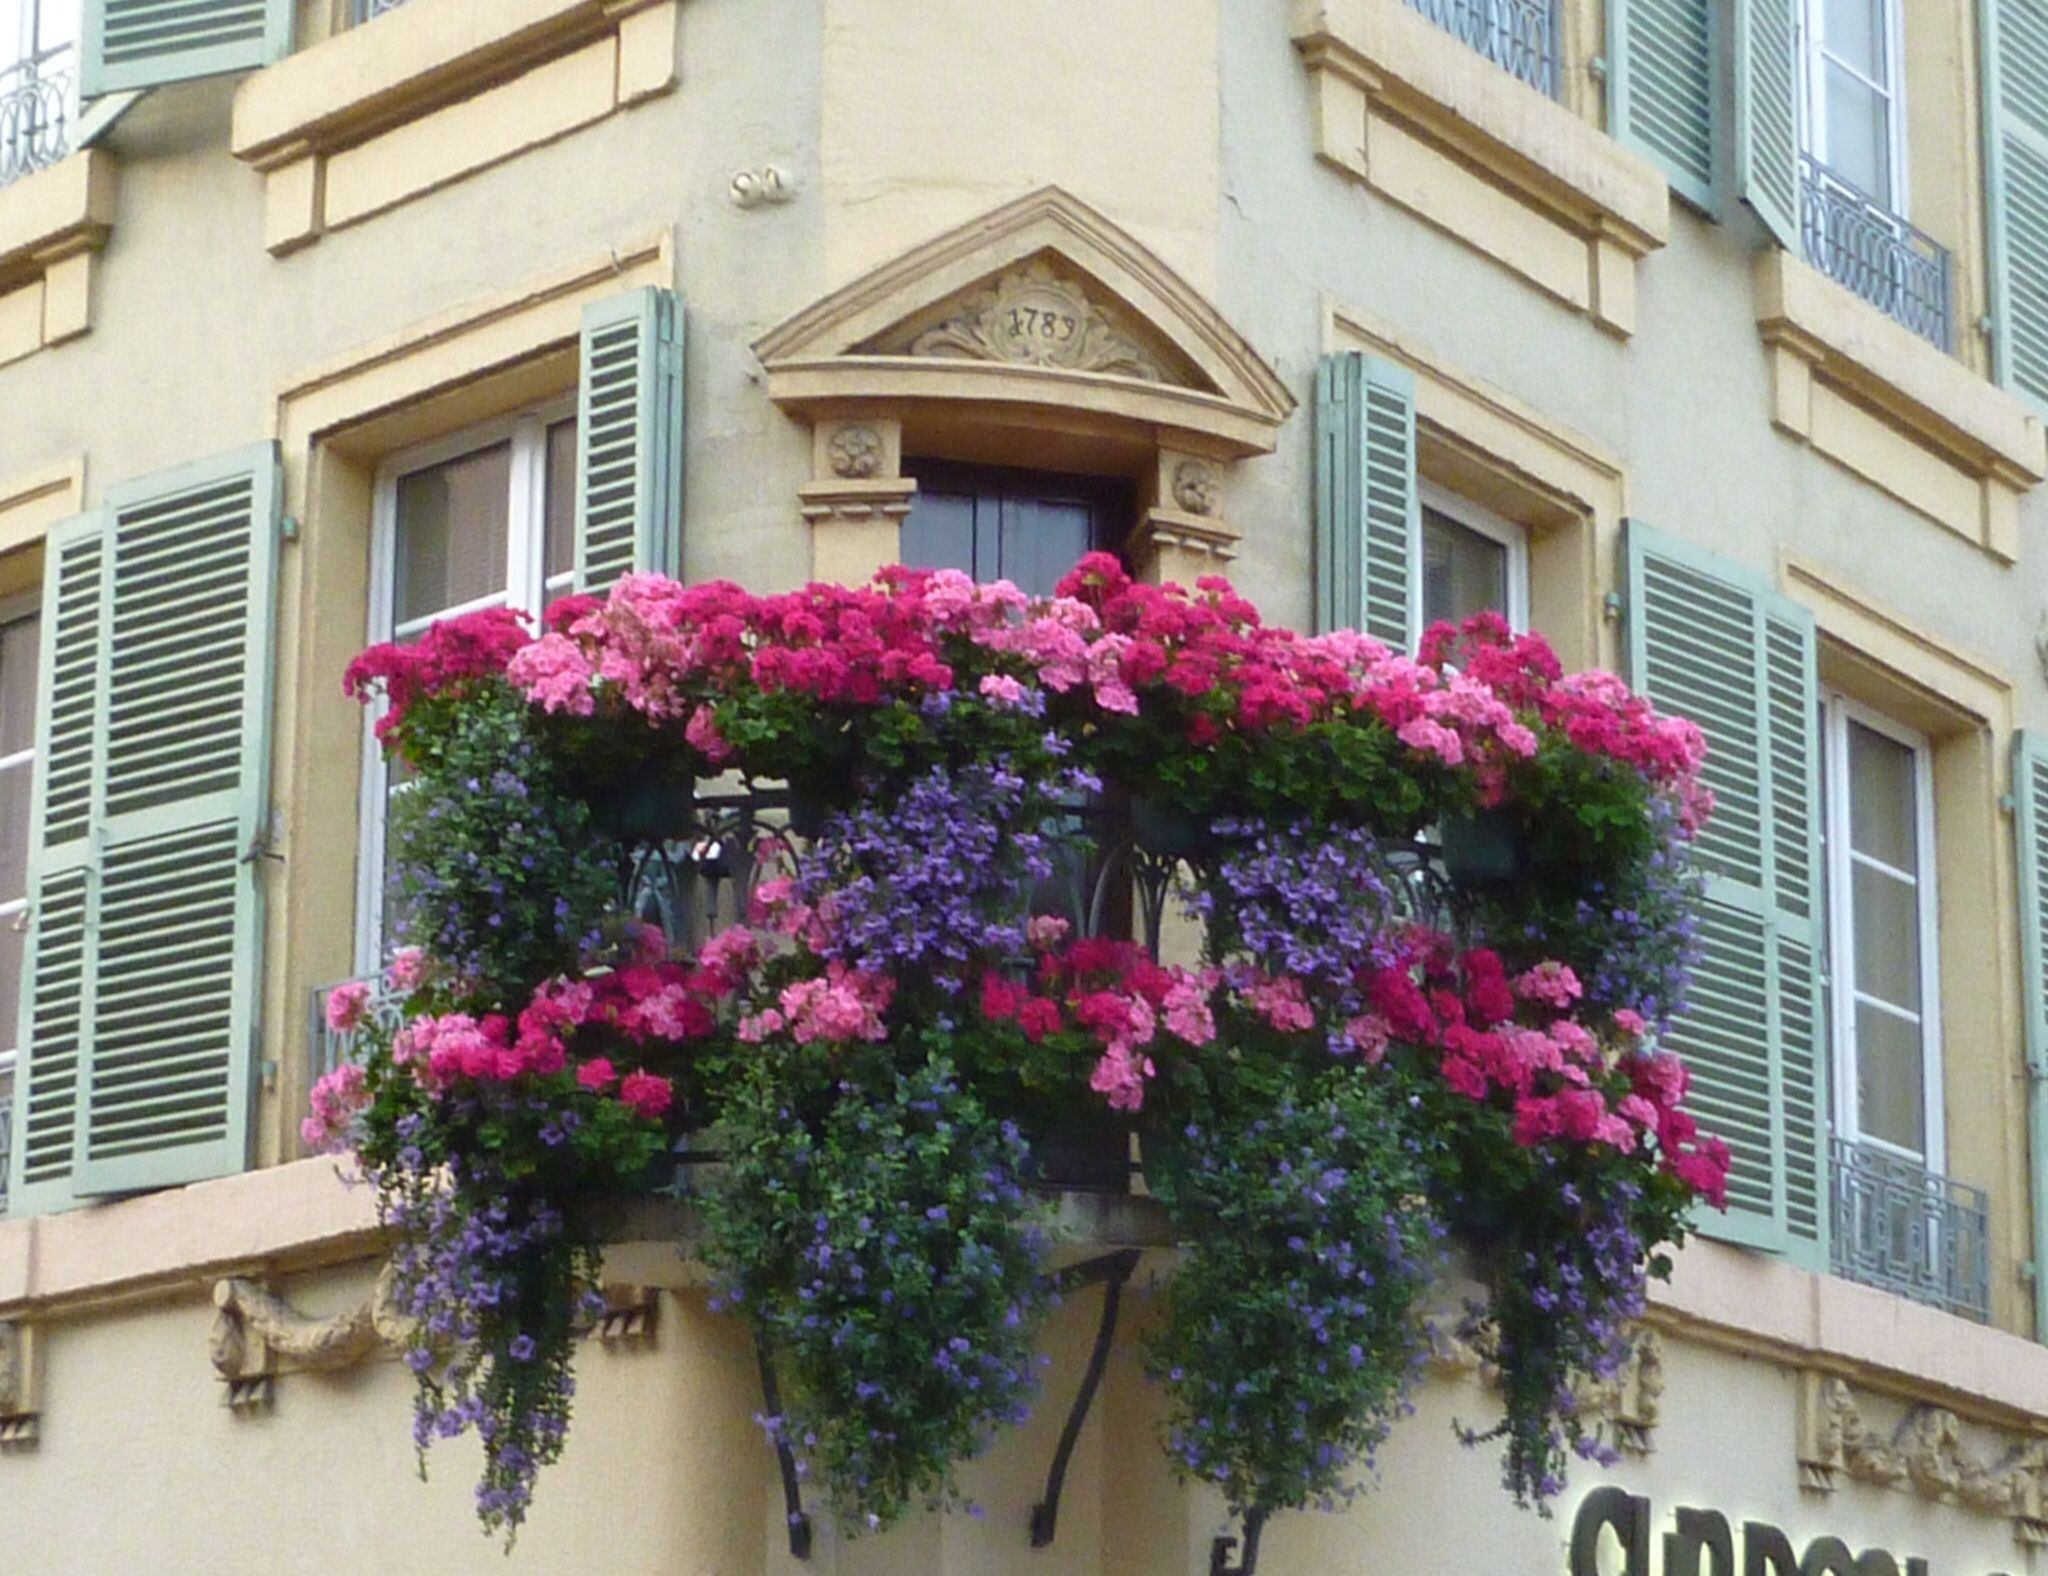 Gorgeous window boxes in Colmar France Window boxes